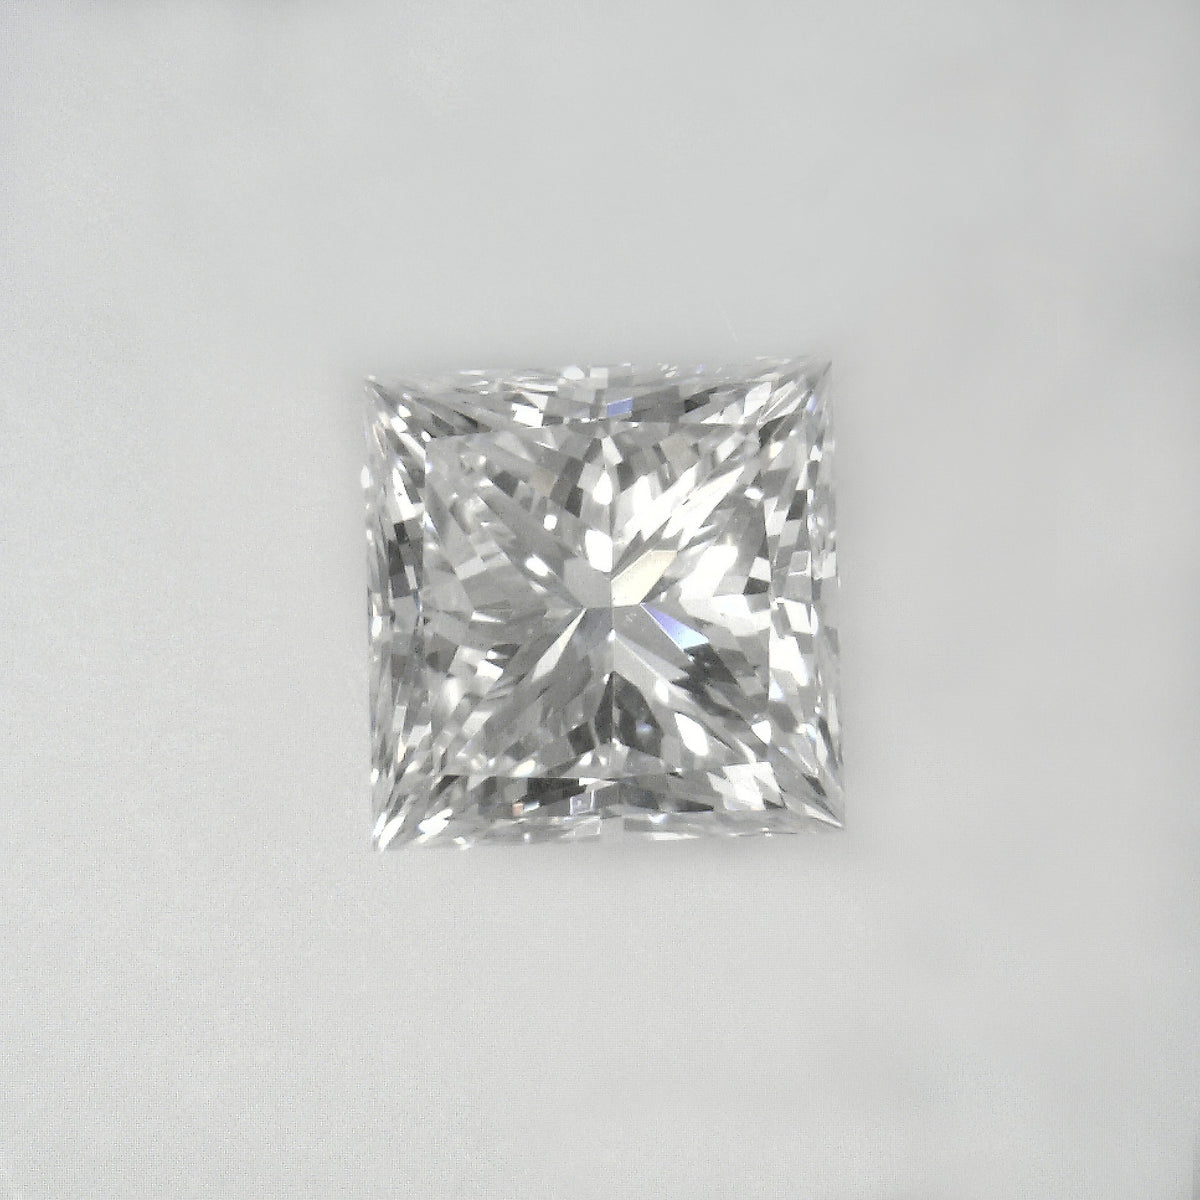 Certified  cut,  color,  clarity, 1.8 Ct Loose Diamonds